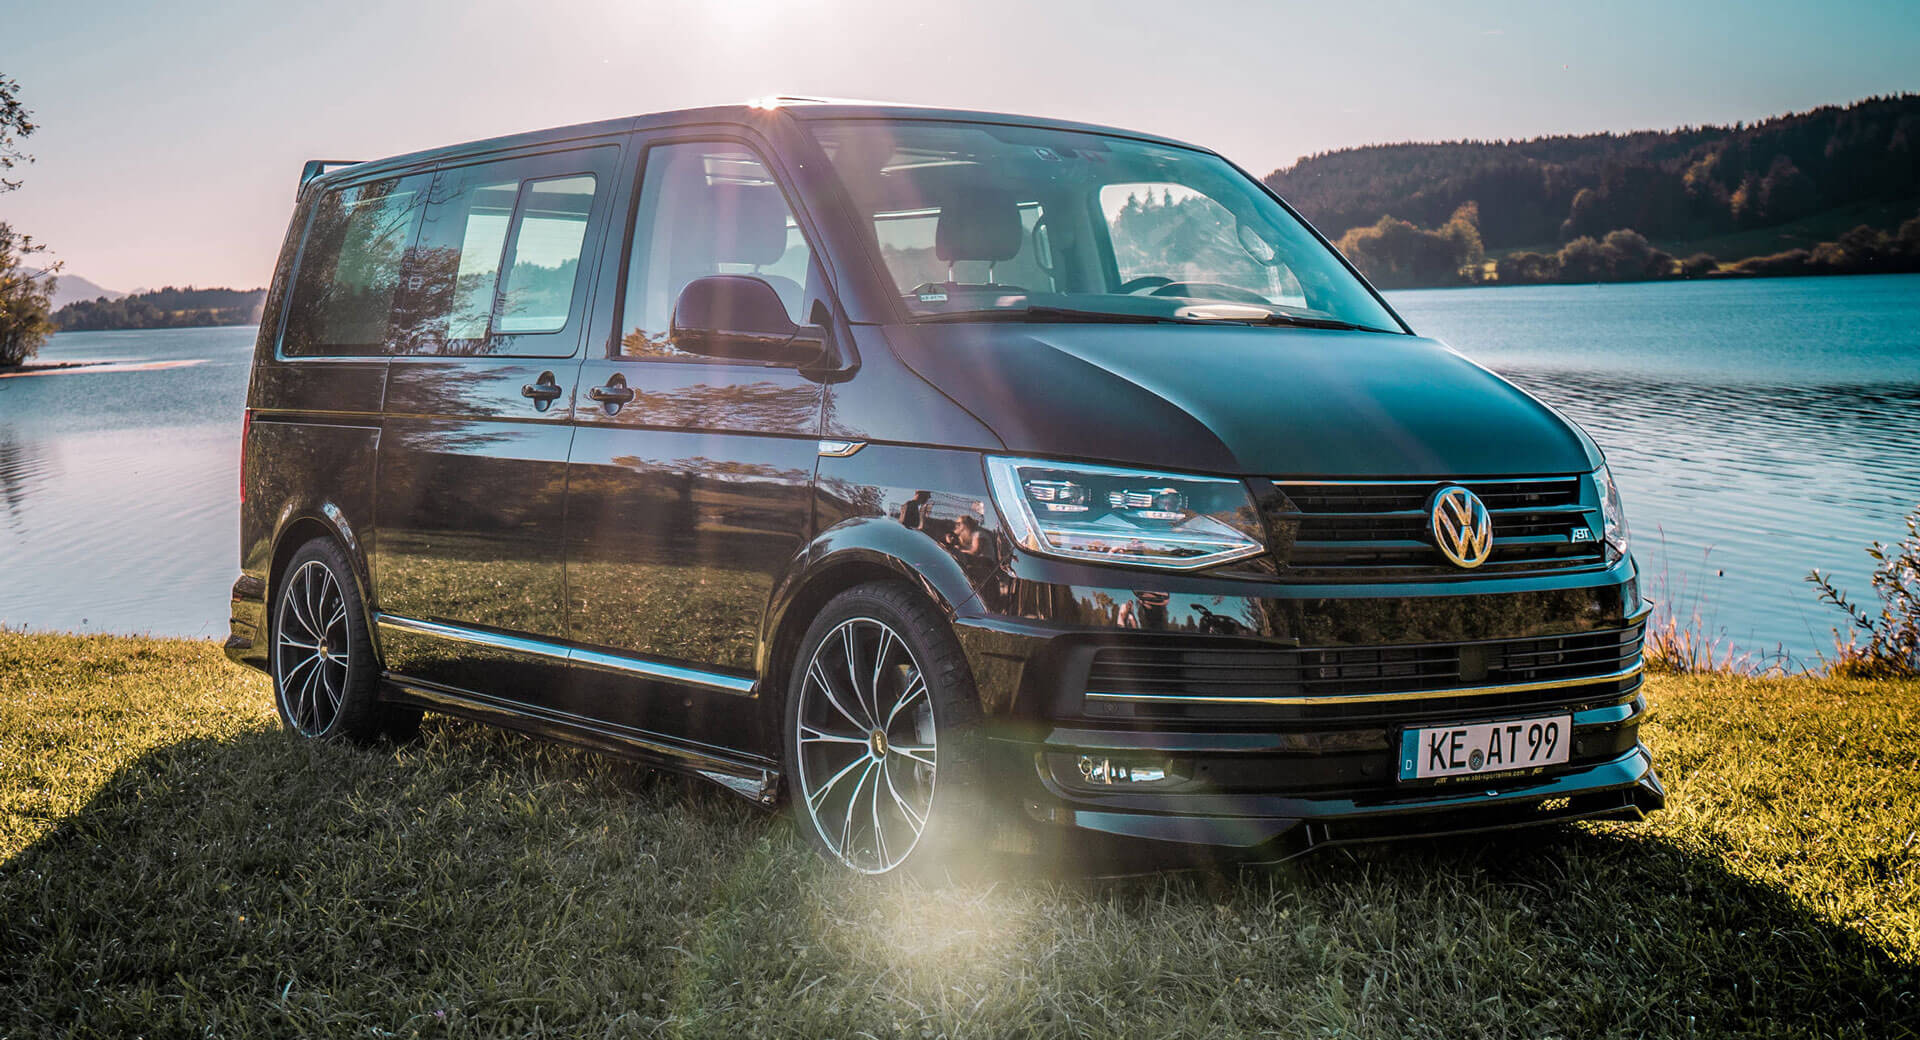 abt gives vw t6 a dose of aggressiveness injects more. Black Bedroom Furniture Sets. Home Design Ideas